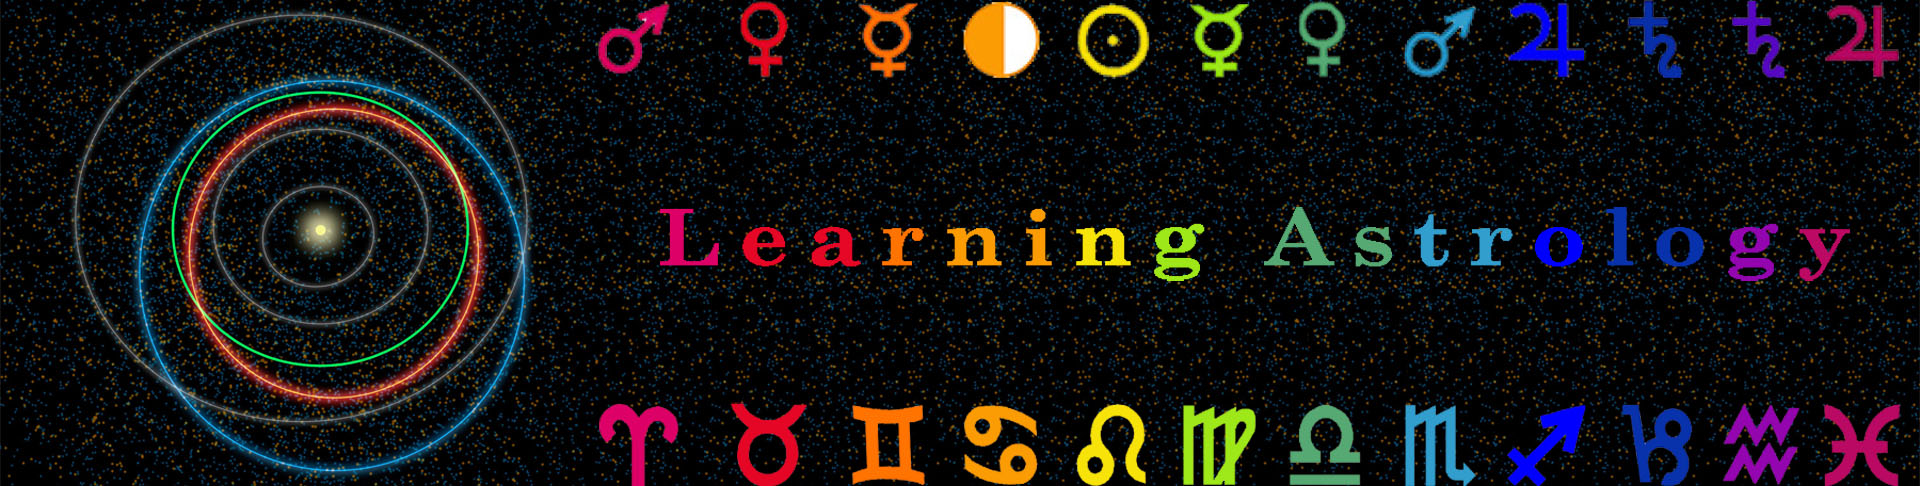 learning-astrology